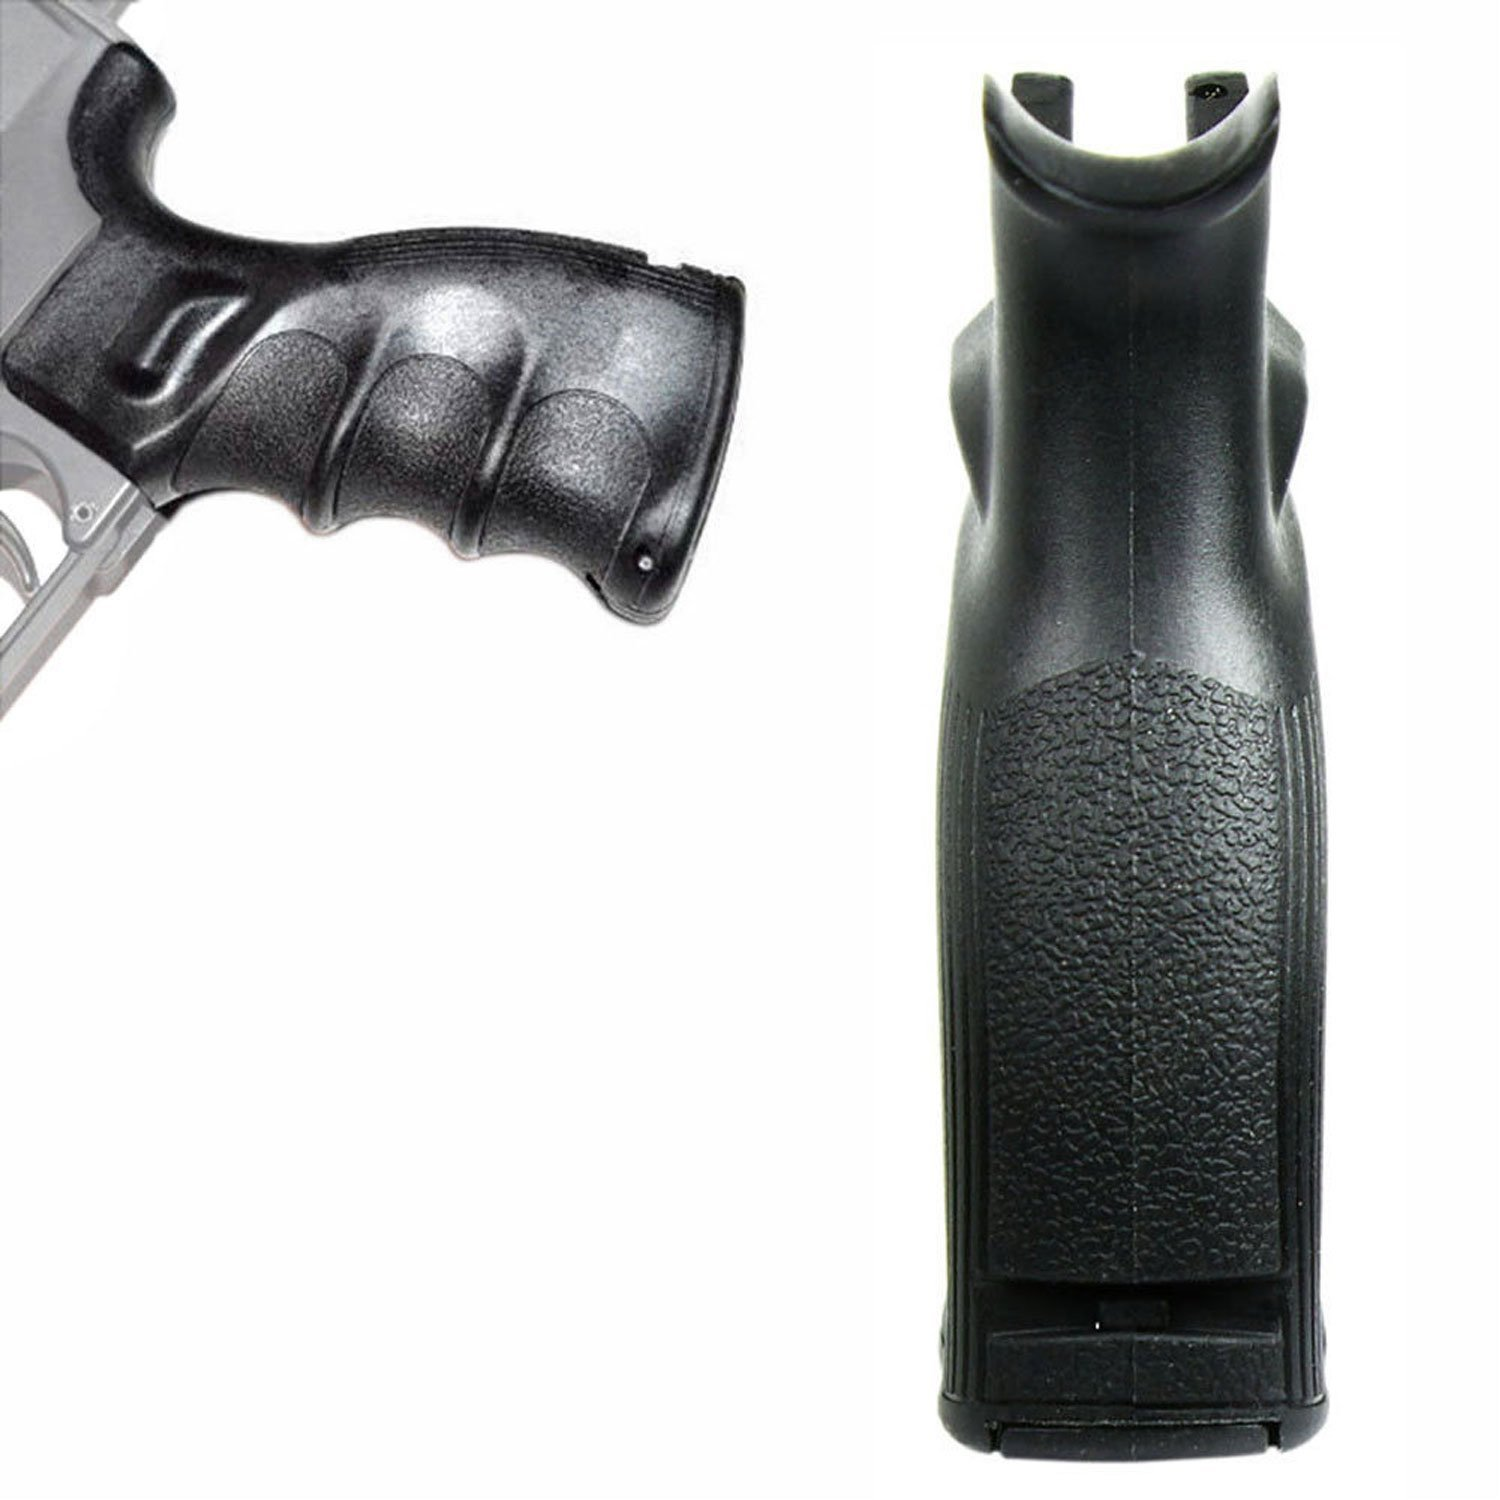 556 223 Ergonomic Rifle Pistol Grip with Finger Groves Storage Compartment Black